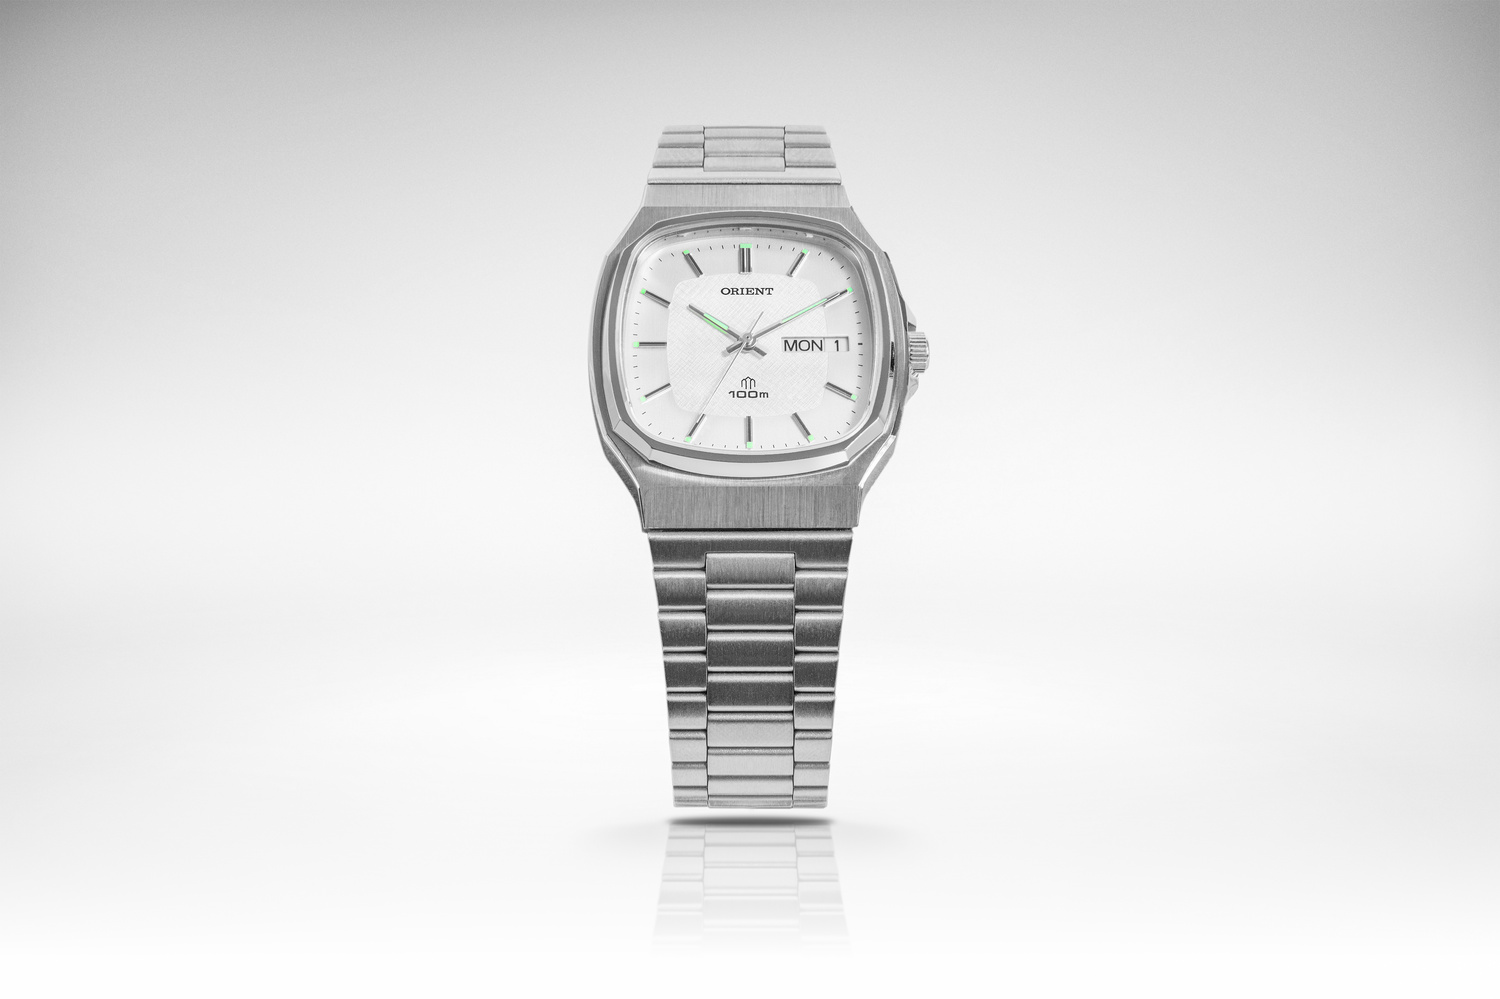 Orient Watch commercial shot by Luca Russo